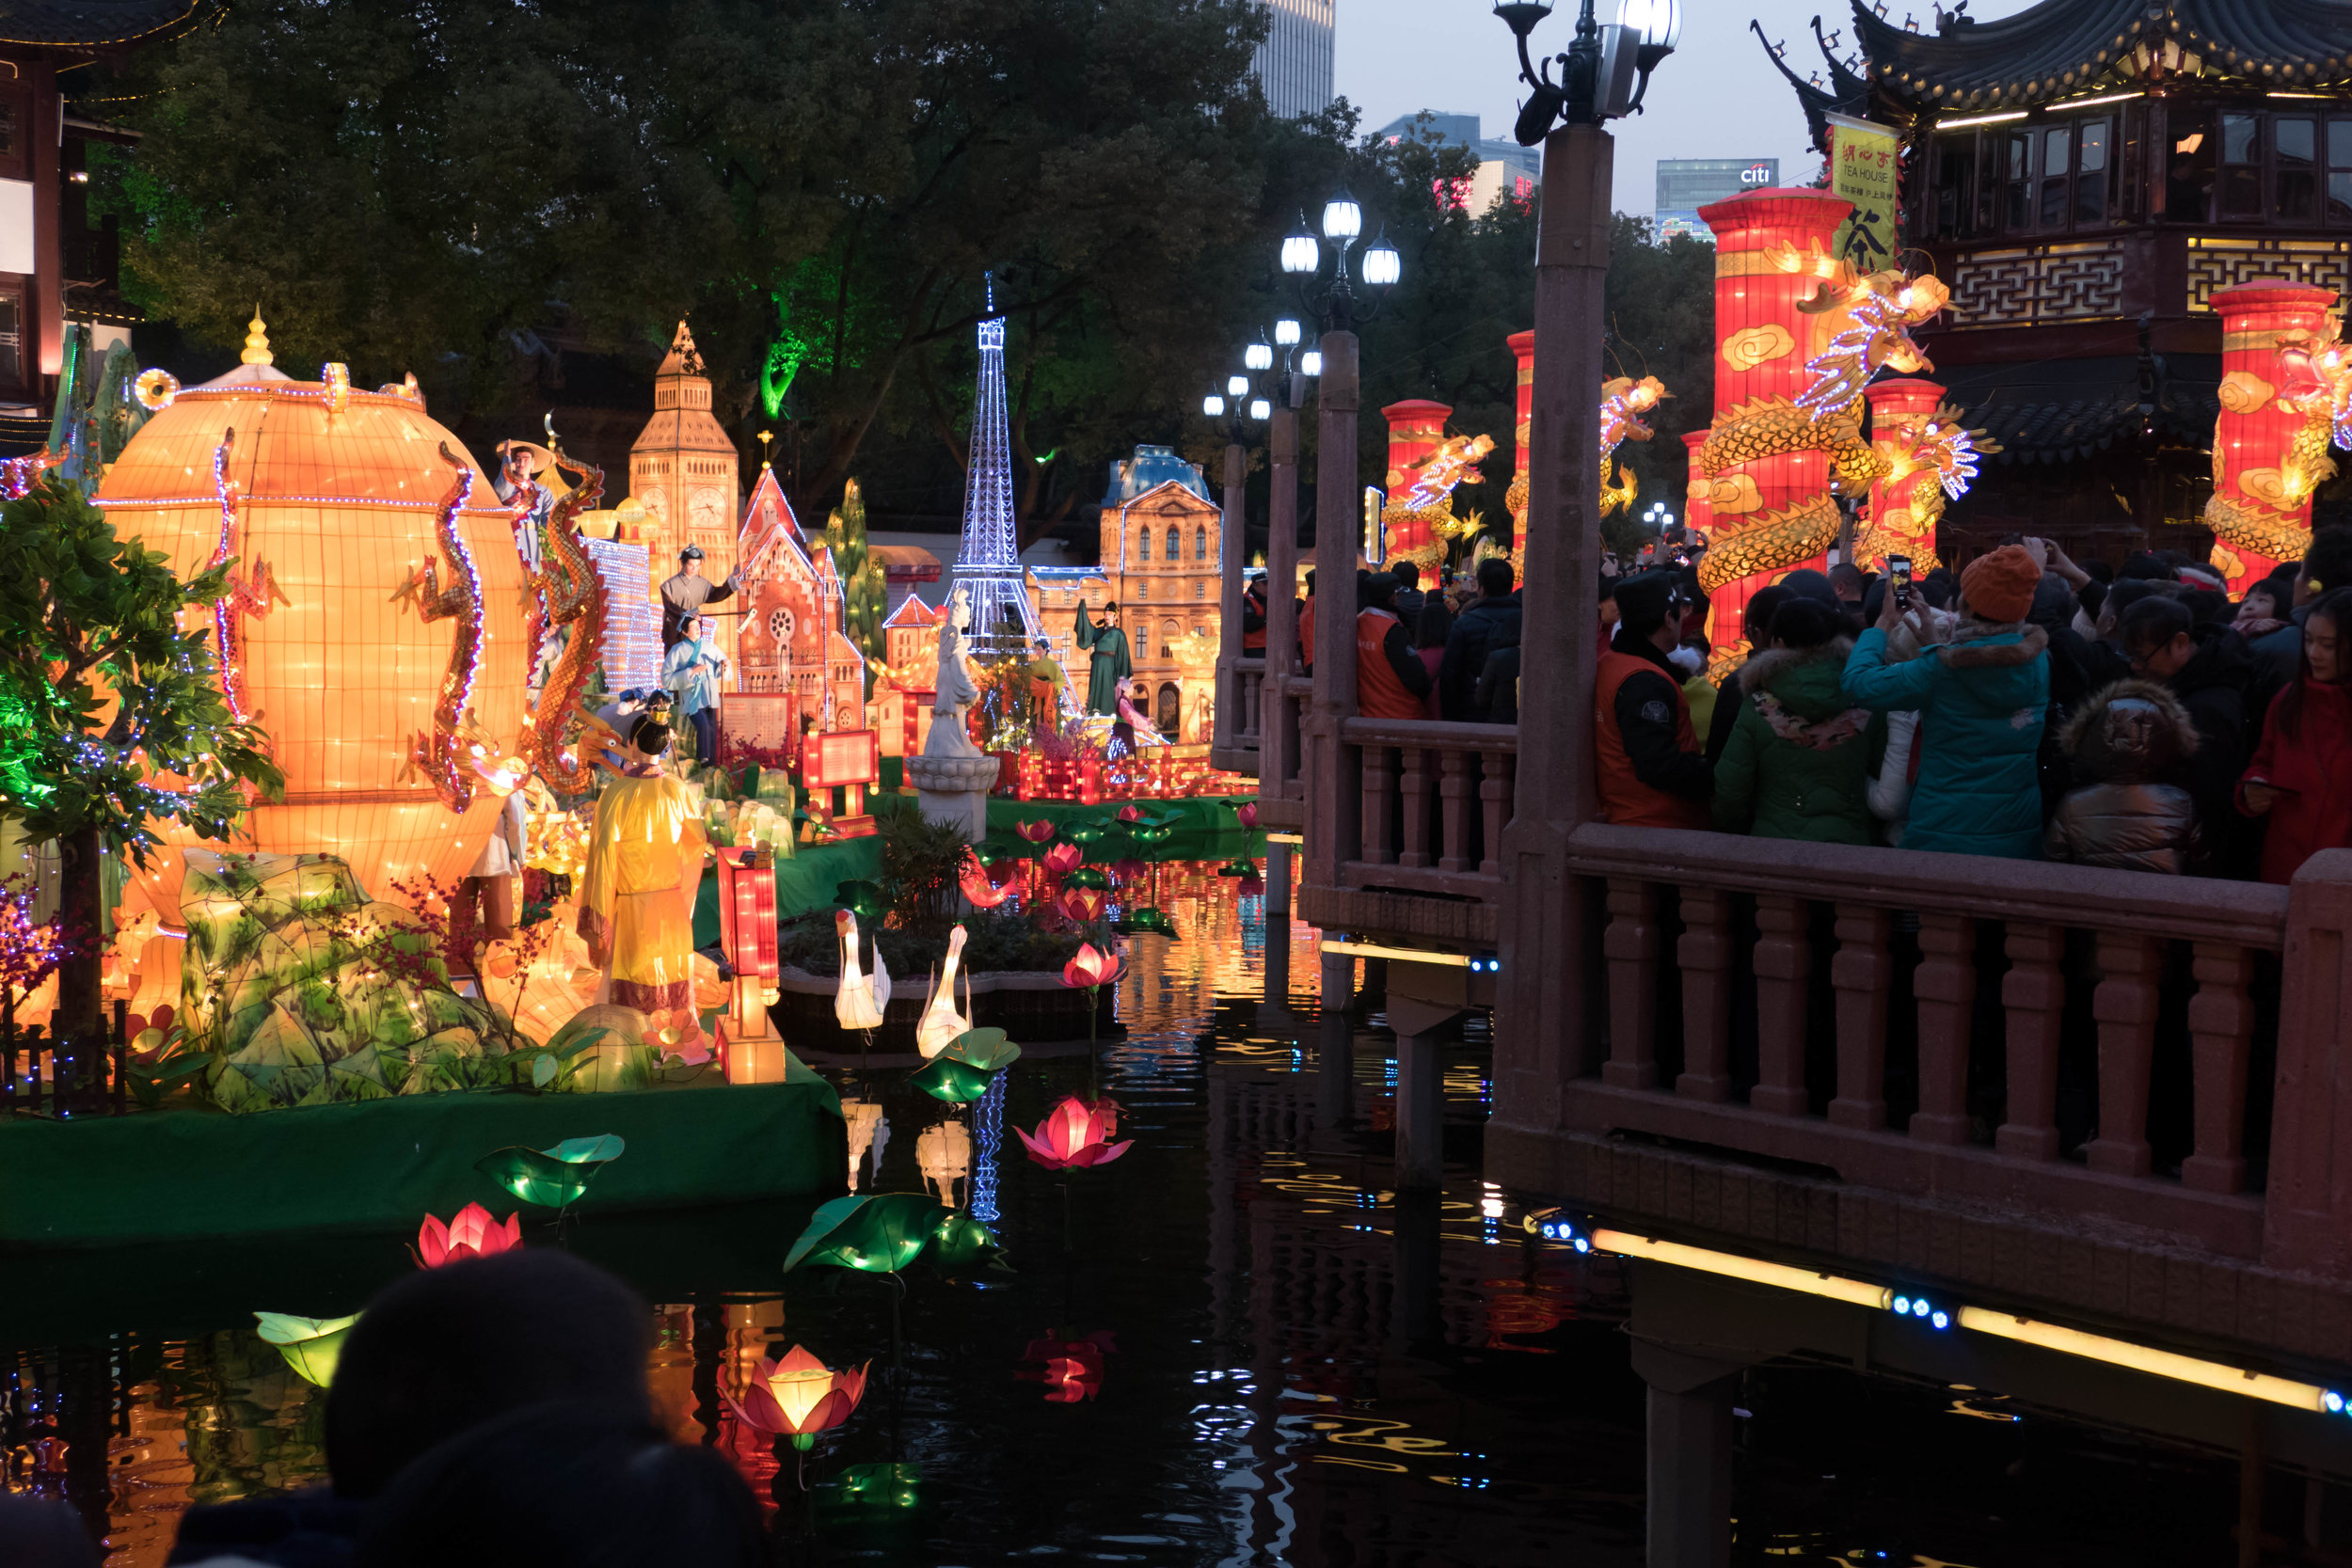 Decorated for the Lantern Festival